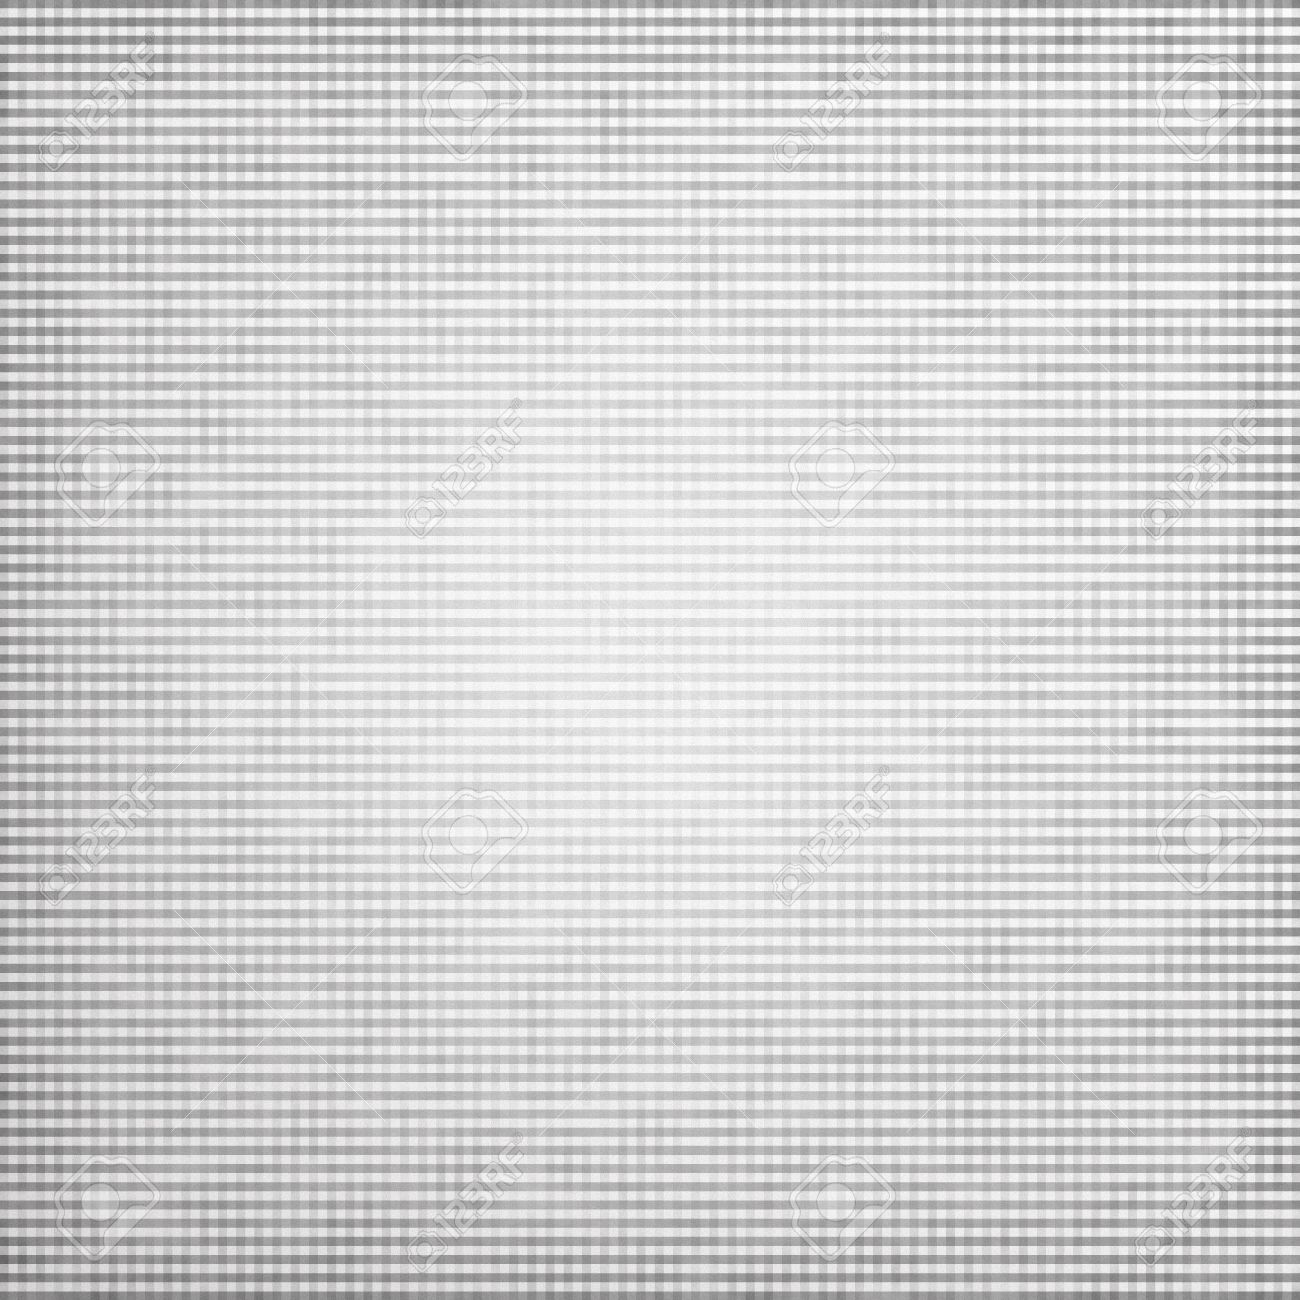 Grey, white, sliver background abstract design texture. High resolution wallpaper. Stock Photo